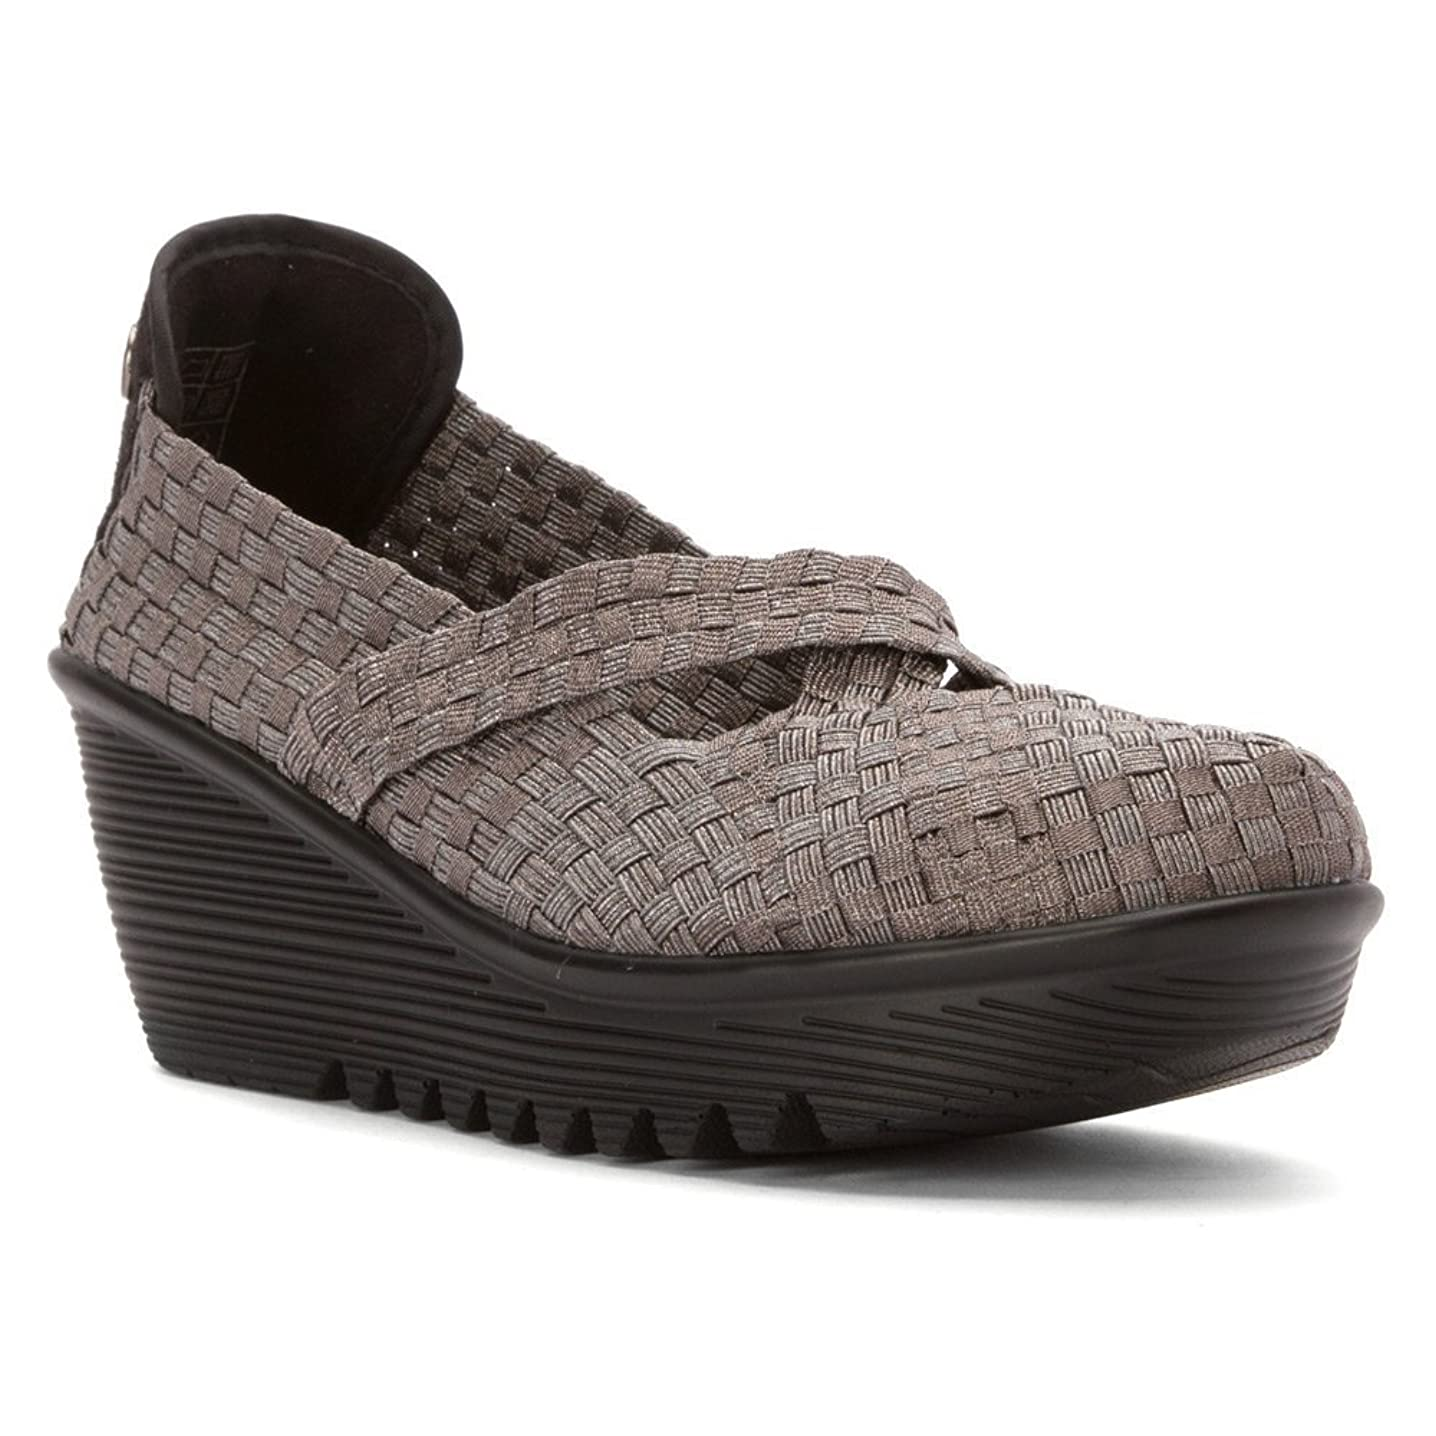 Bernie Mev Women's, Crown Slip-on